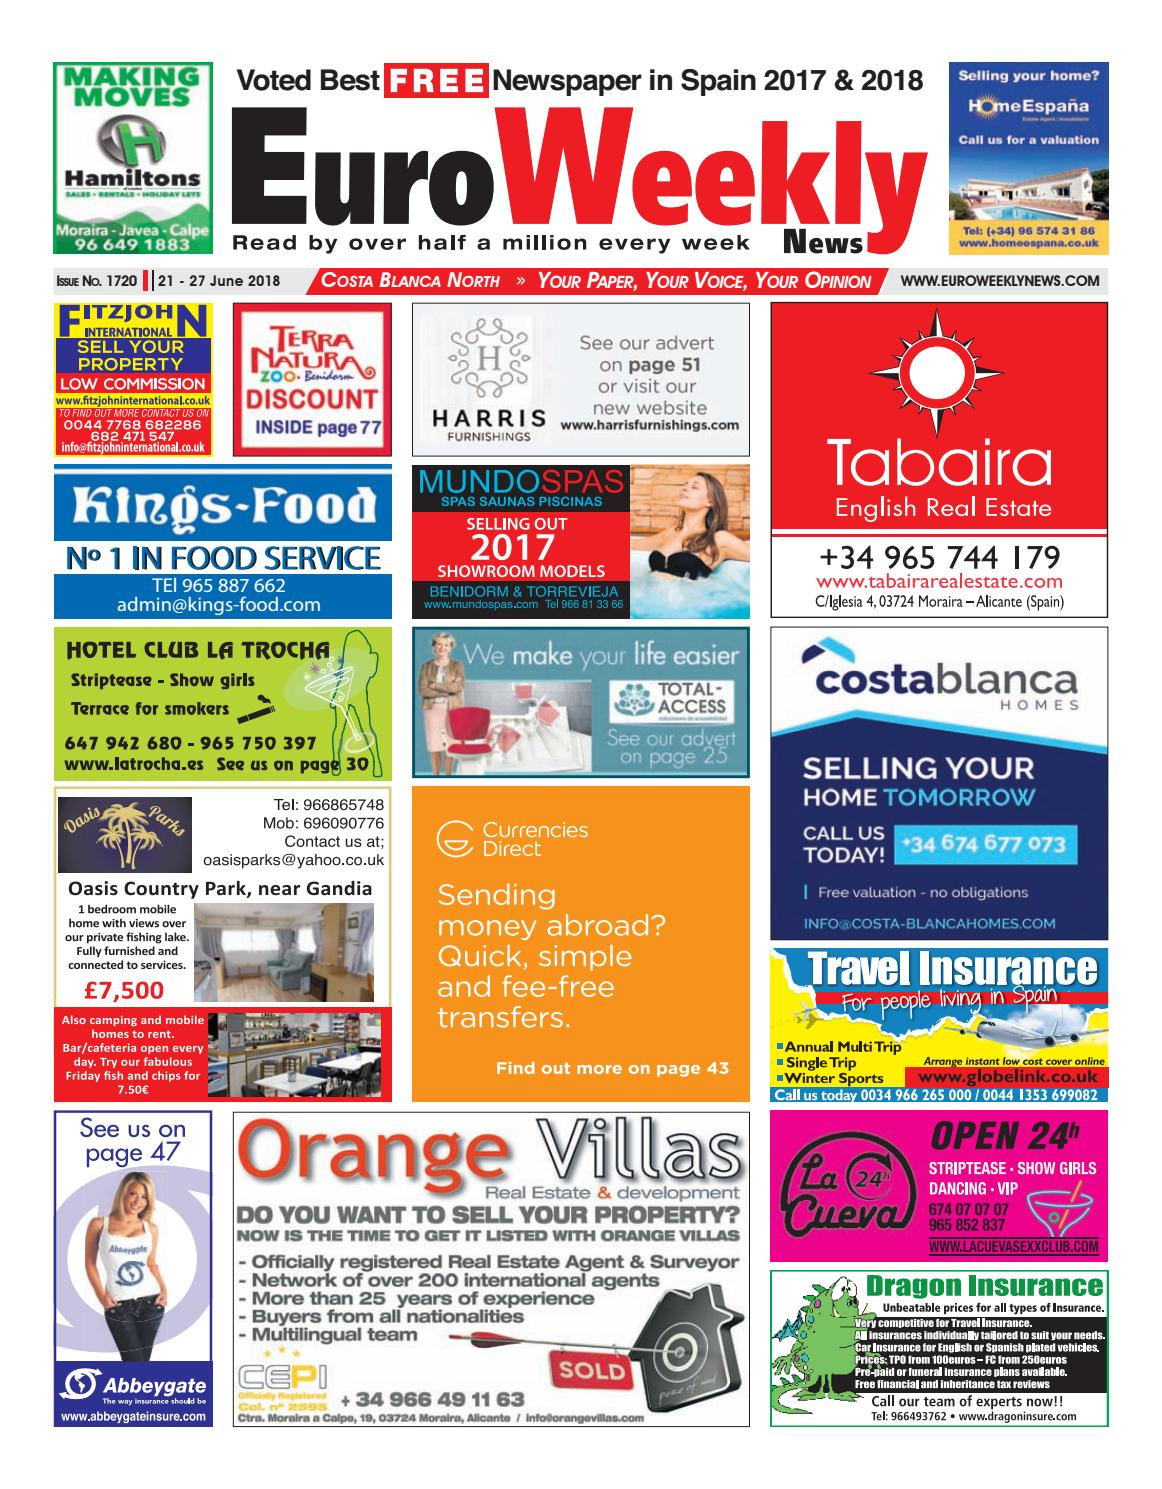 Euro Weekly News Costa Blanca North 21 27 June 2018